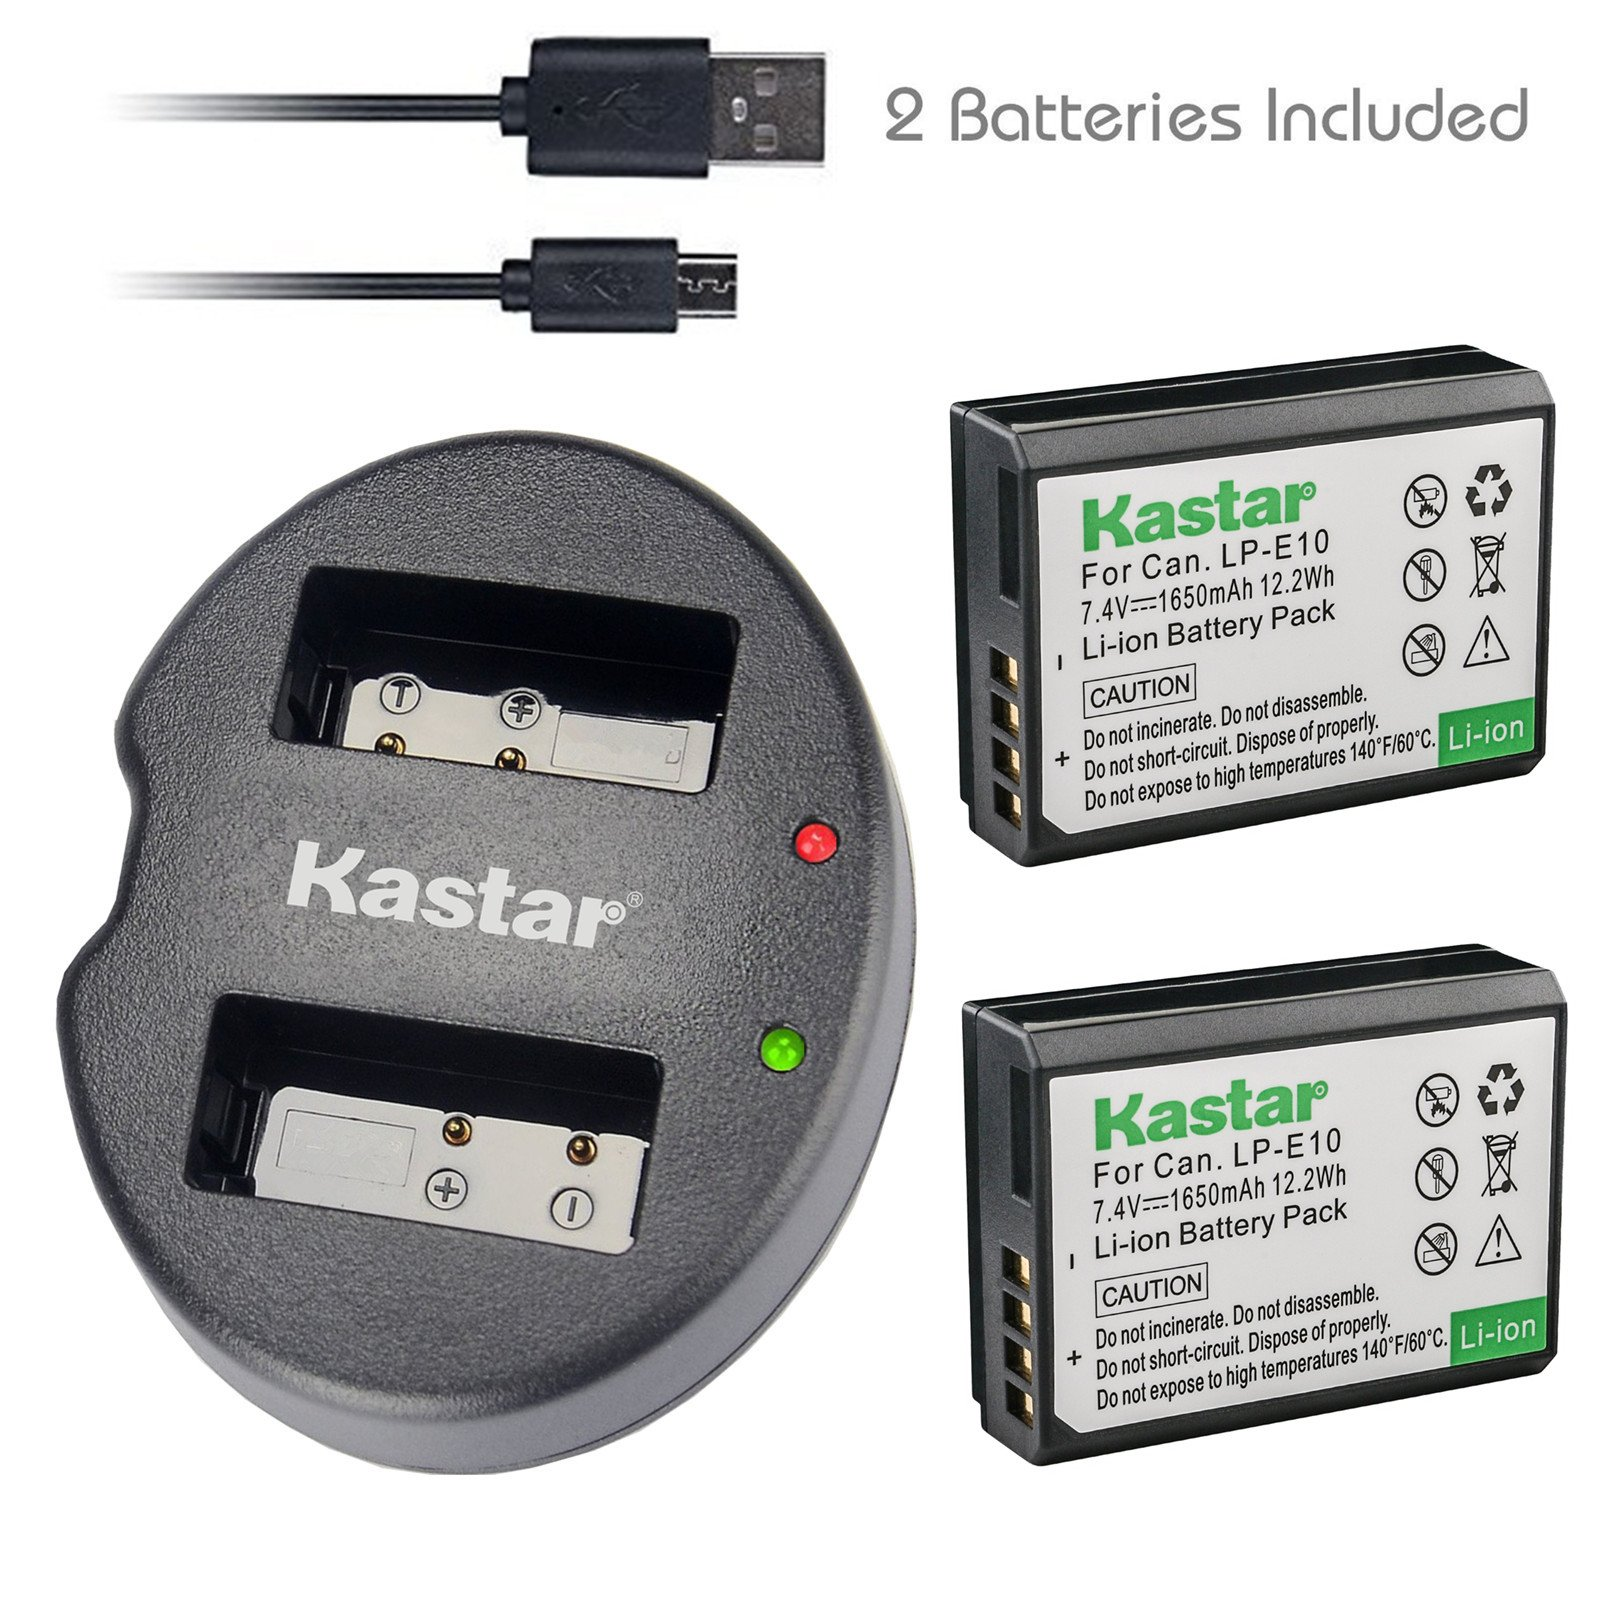 Kastar Battery (X2) & Dual USB Charger for Canon LP-E10, LC-E10 and Canon EOS 1100D, EOS 1200D, EOS Rebel T3, EOS Rebel T5, EOS Kiss X50, EOS Kiss X70 DSLR Camera & Canon LPE10 Grip